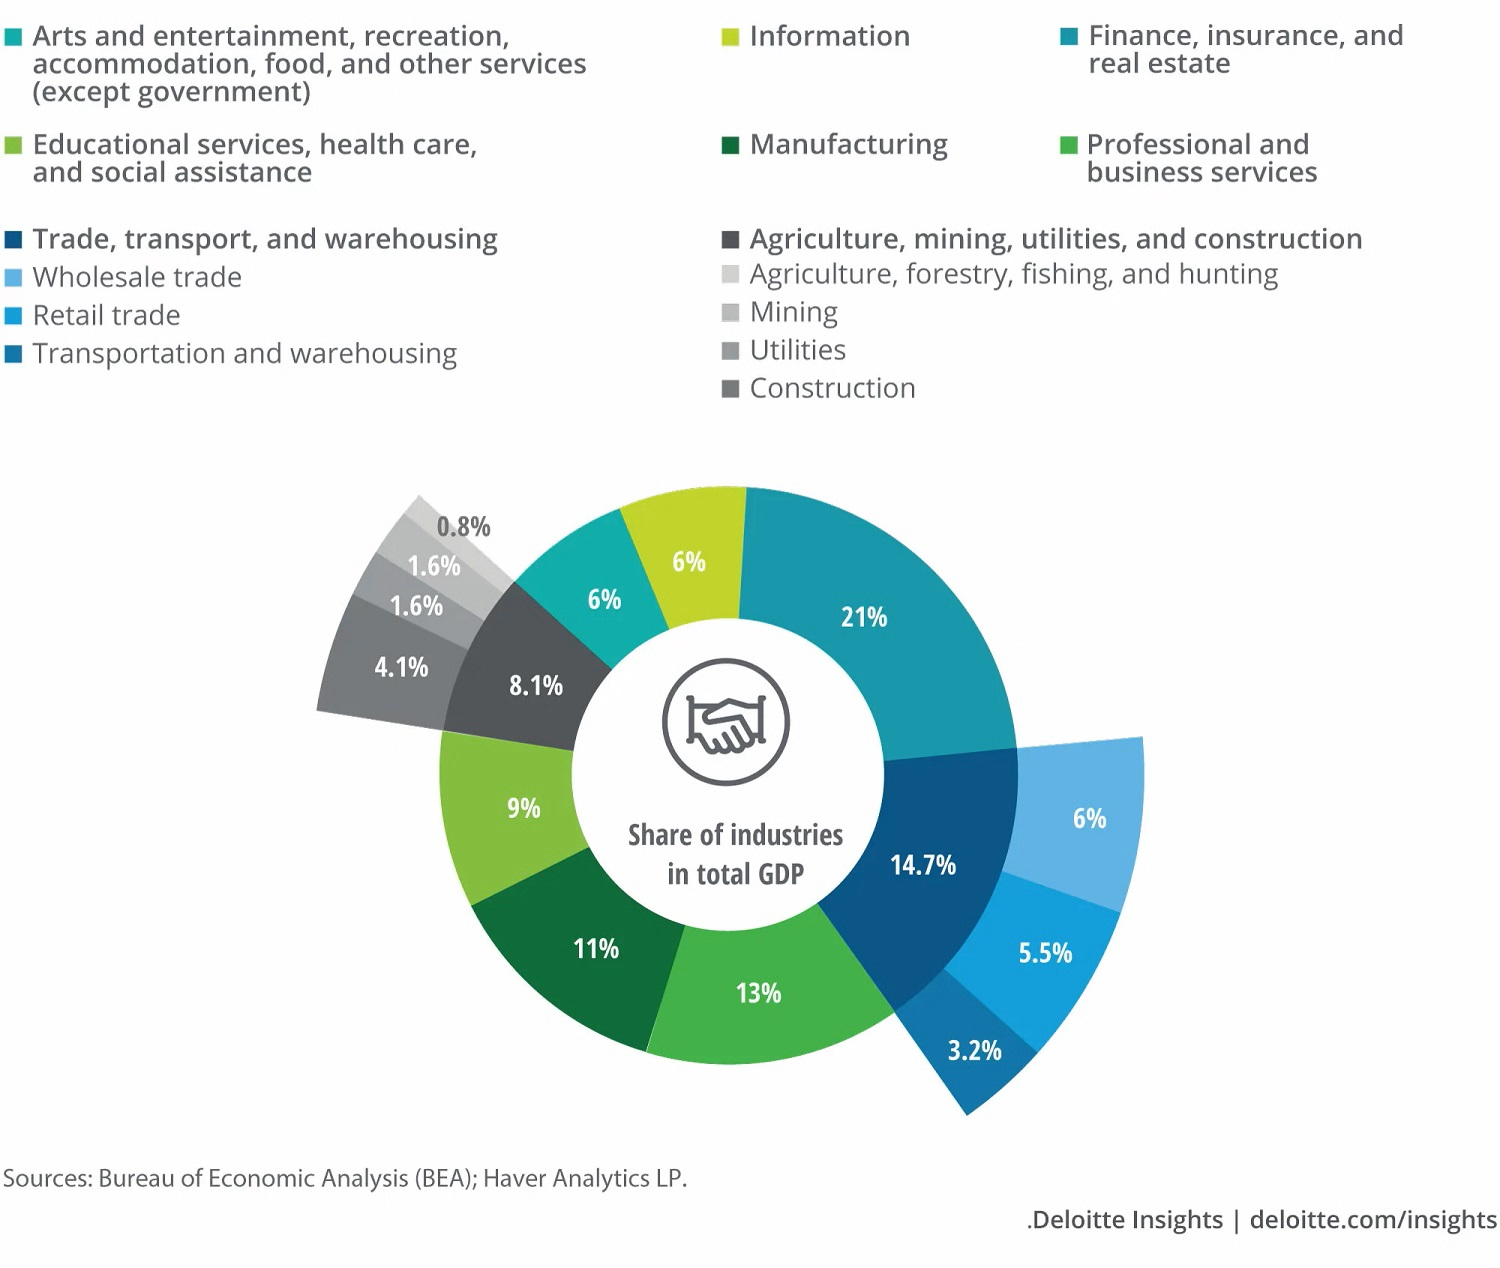 Deloitte insights service sector